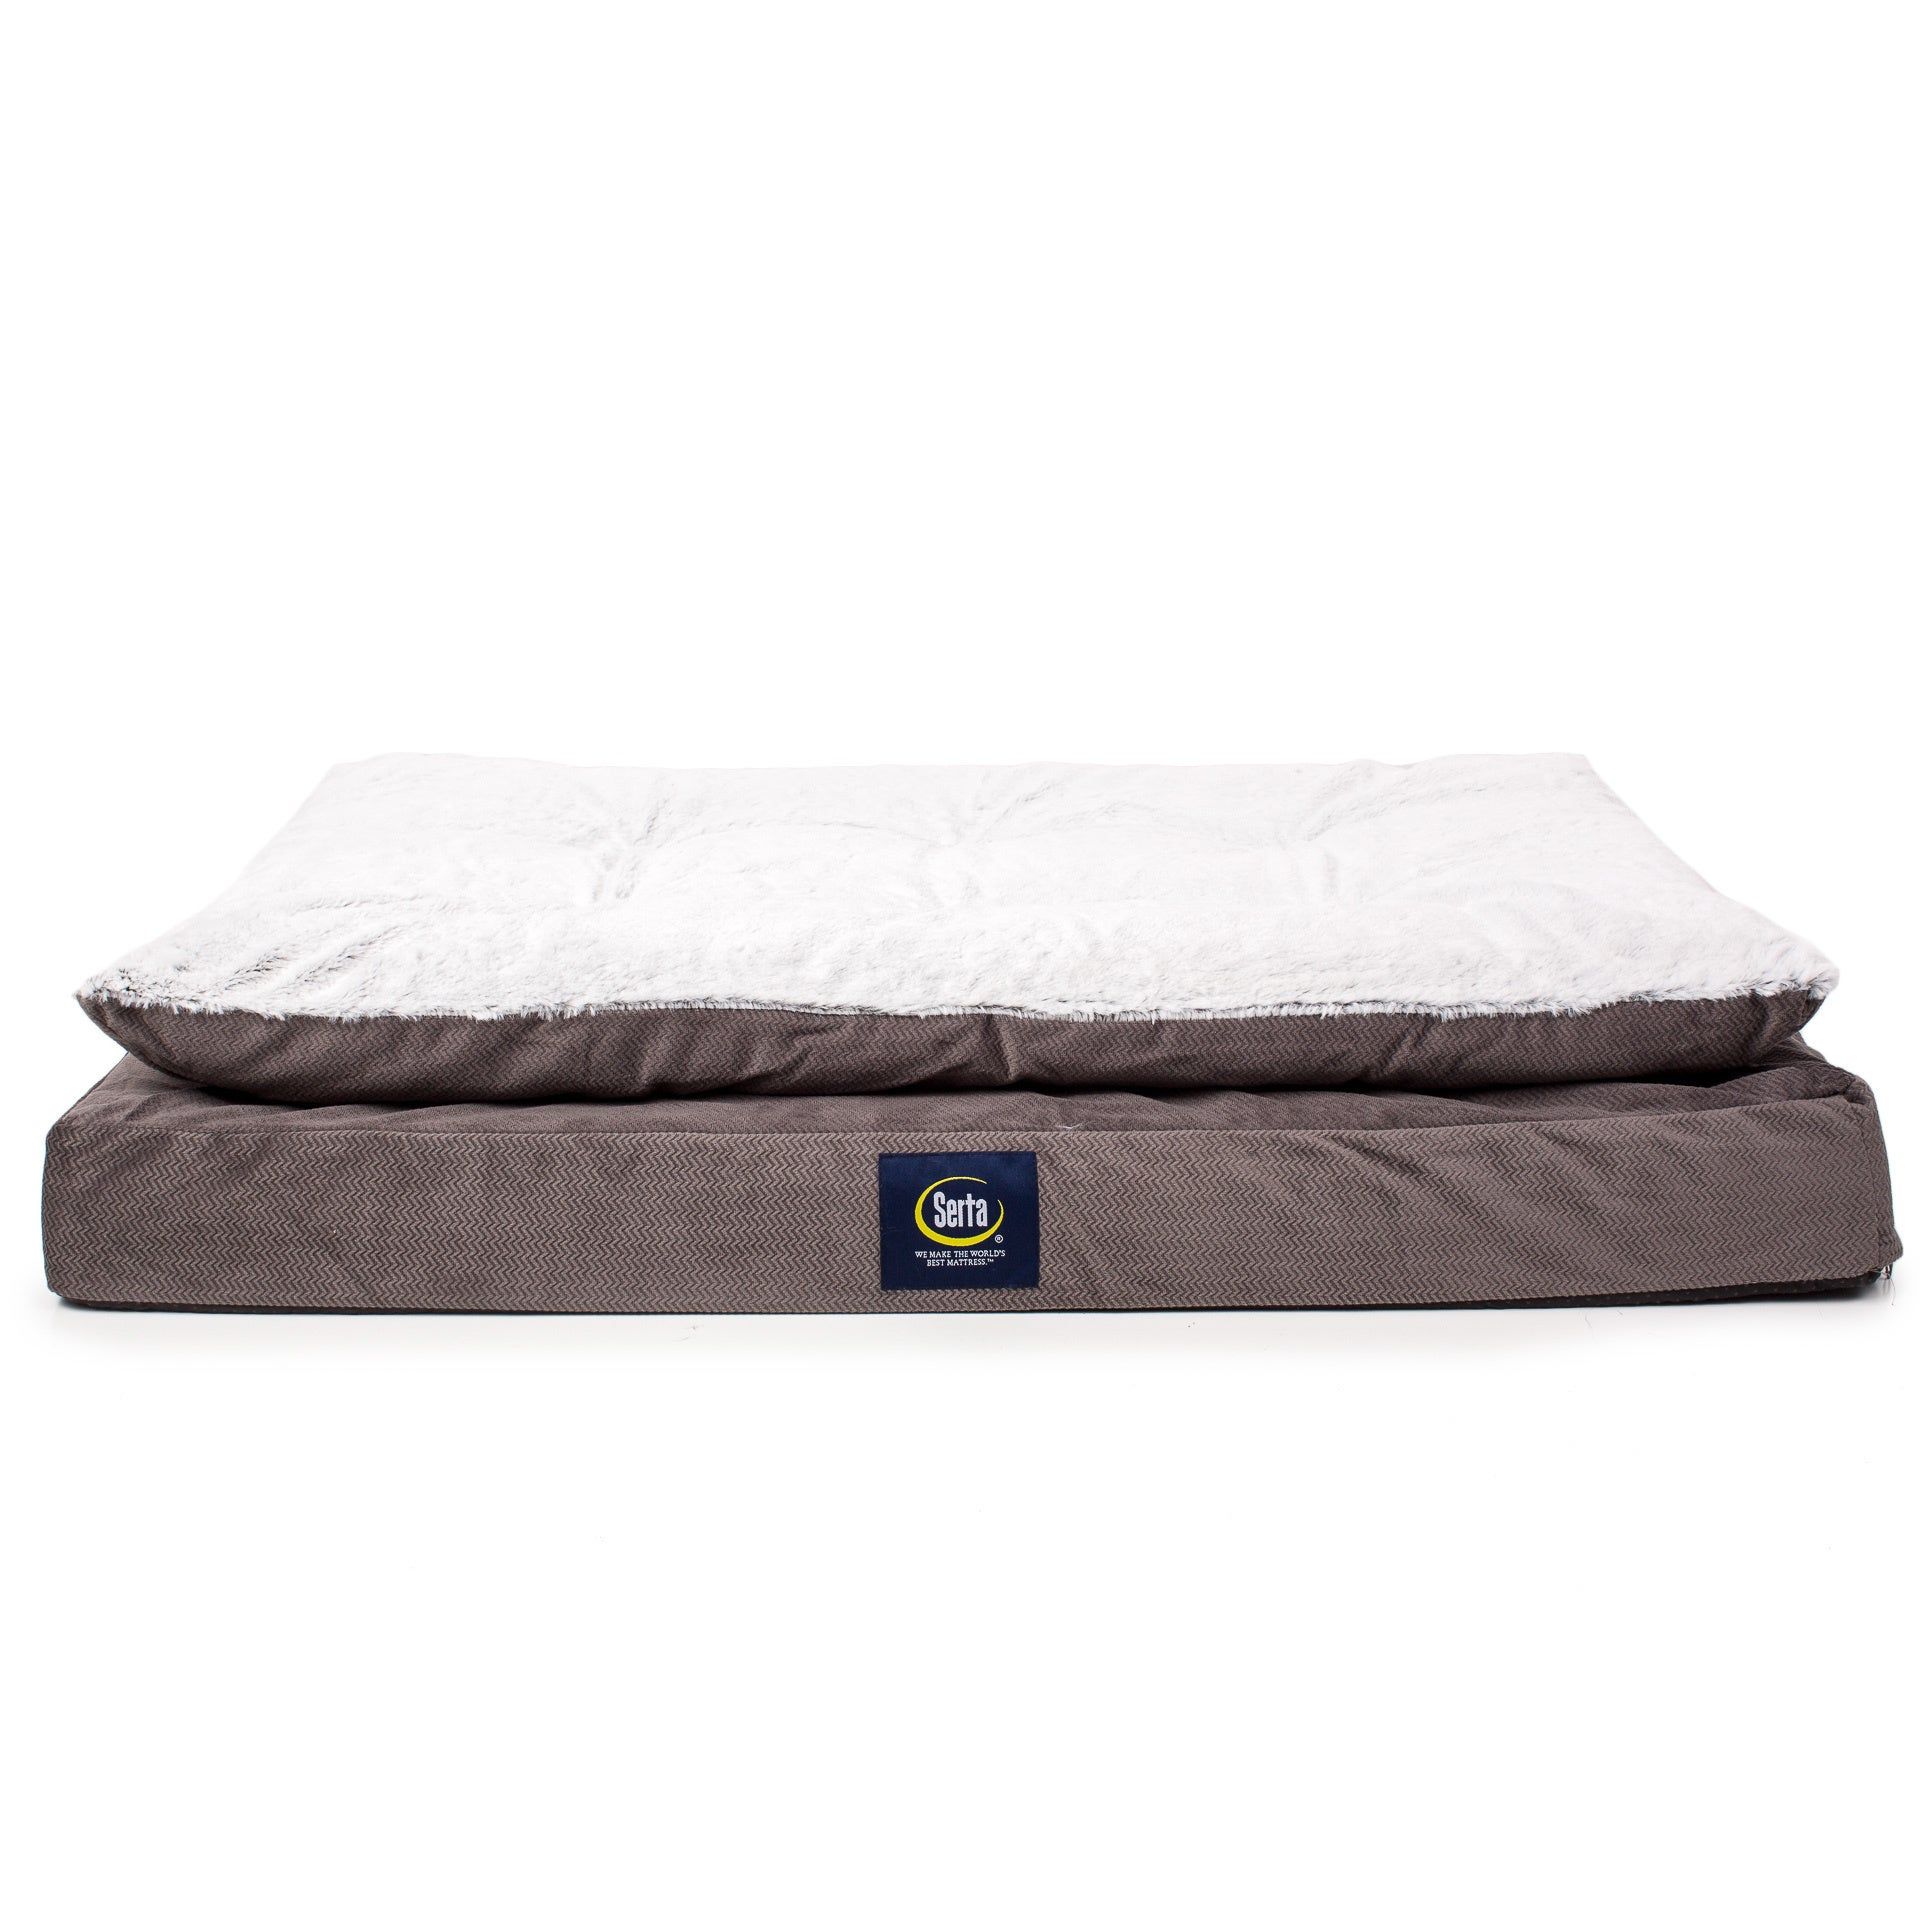 serta petco beds on petcostore en category bedding large shop and sale best dog bed small center